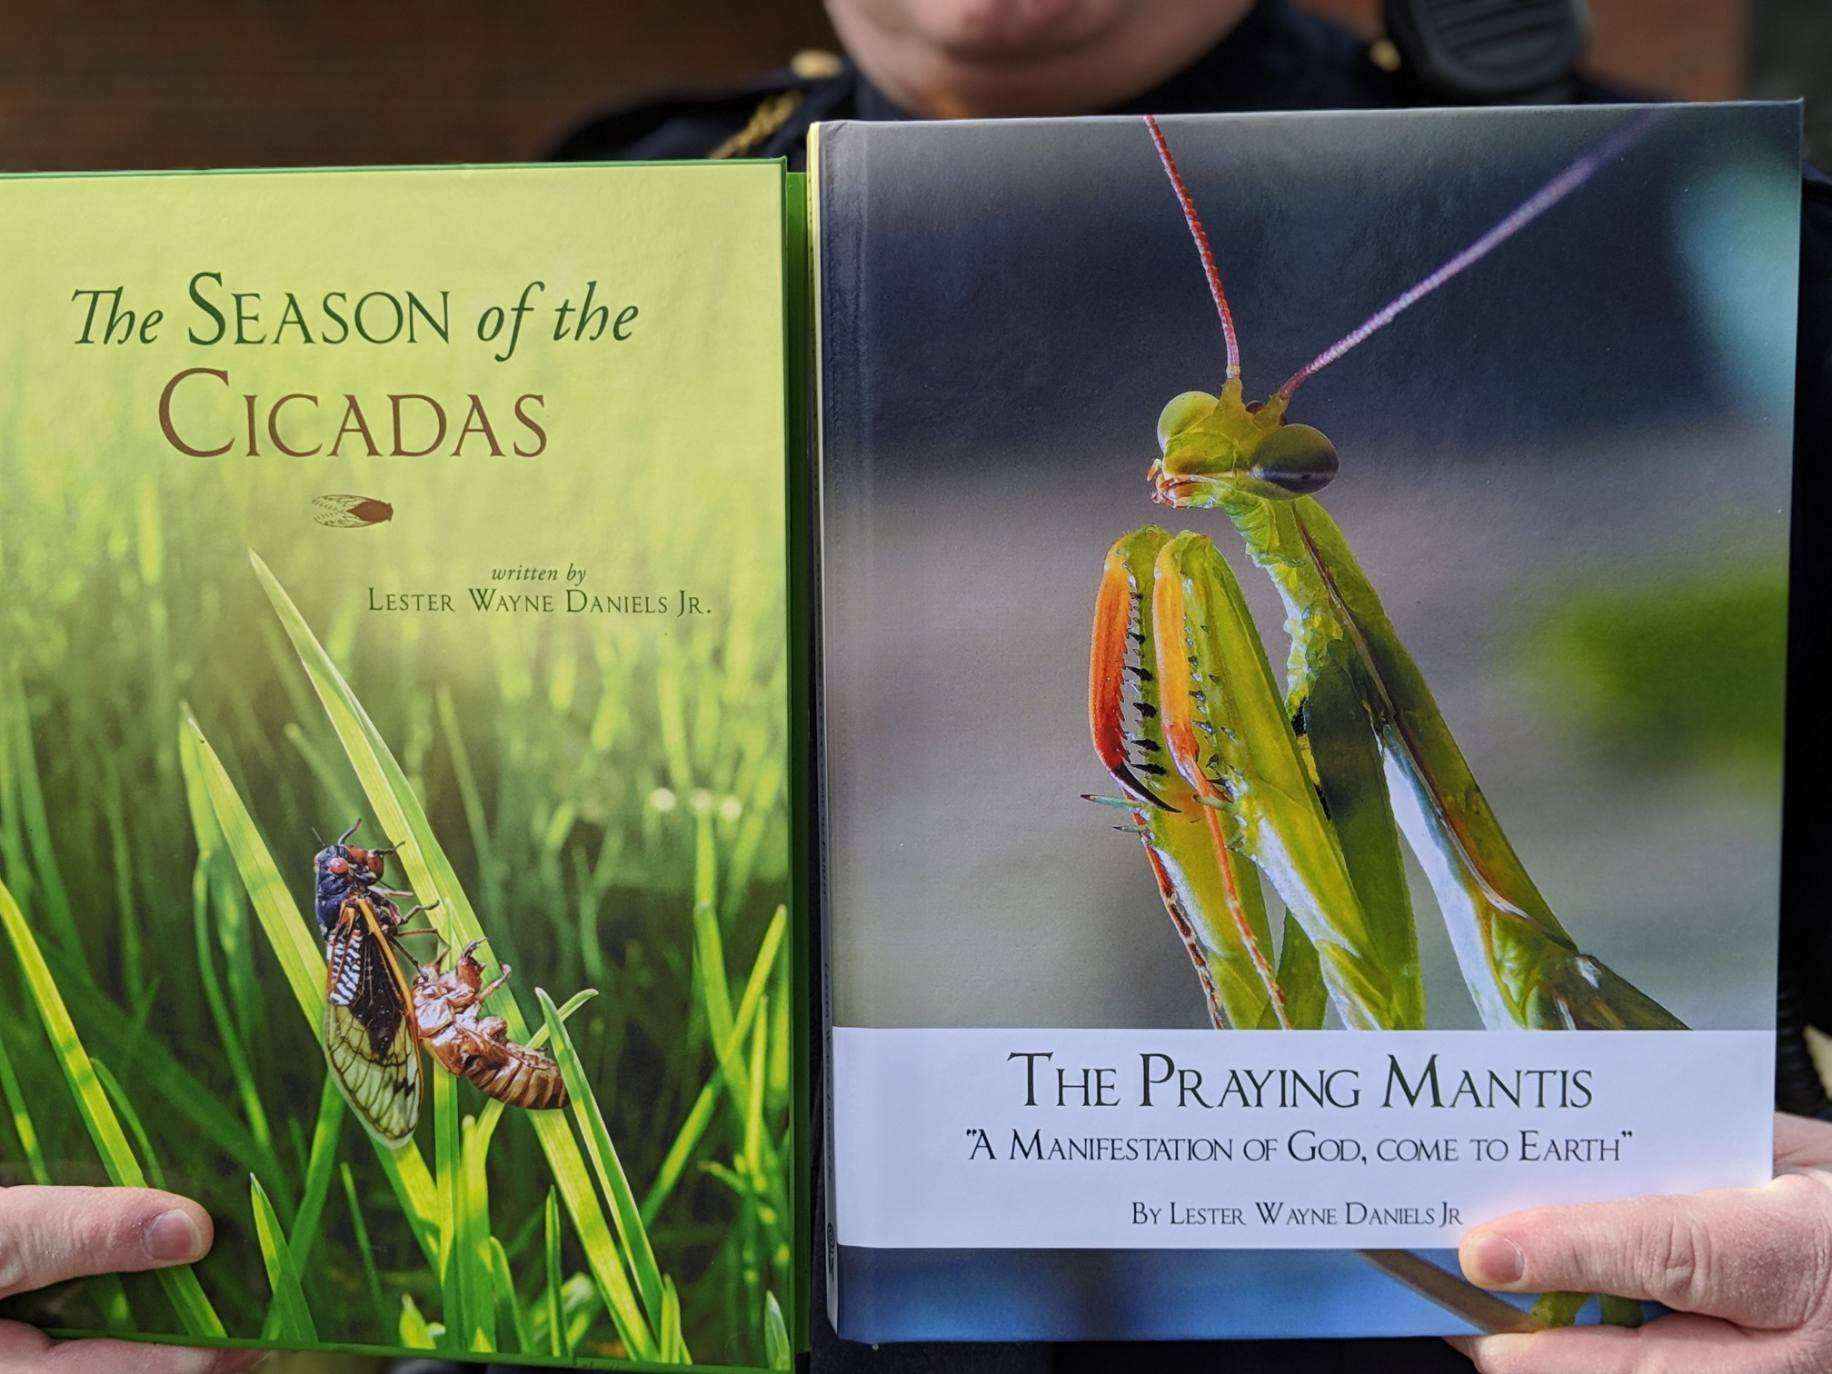 Fremont Police Officer Explores Love For Bugs In Praying Mantis Book